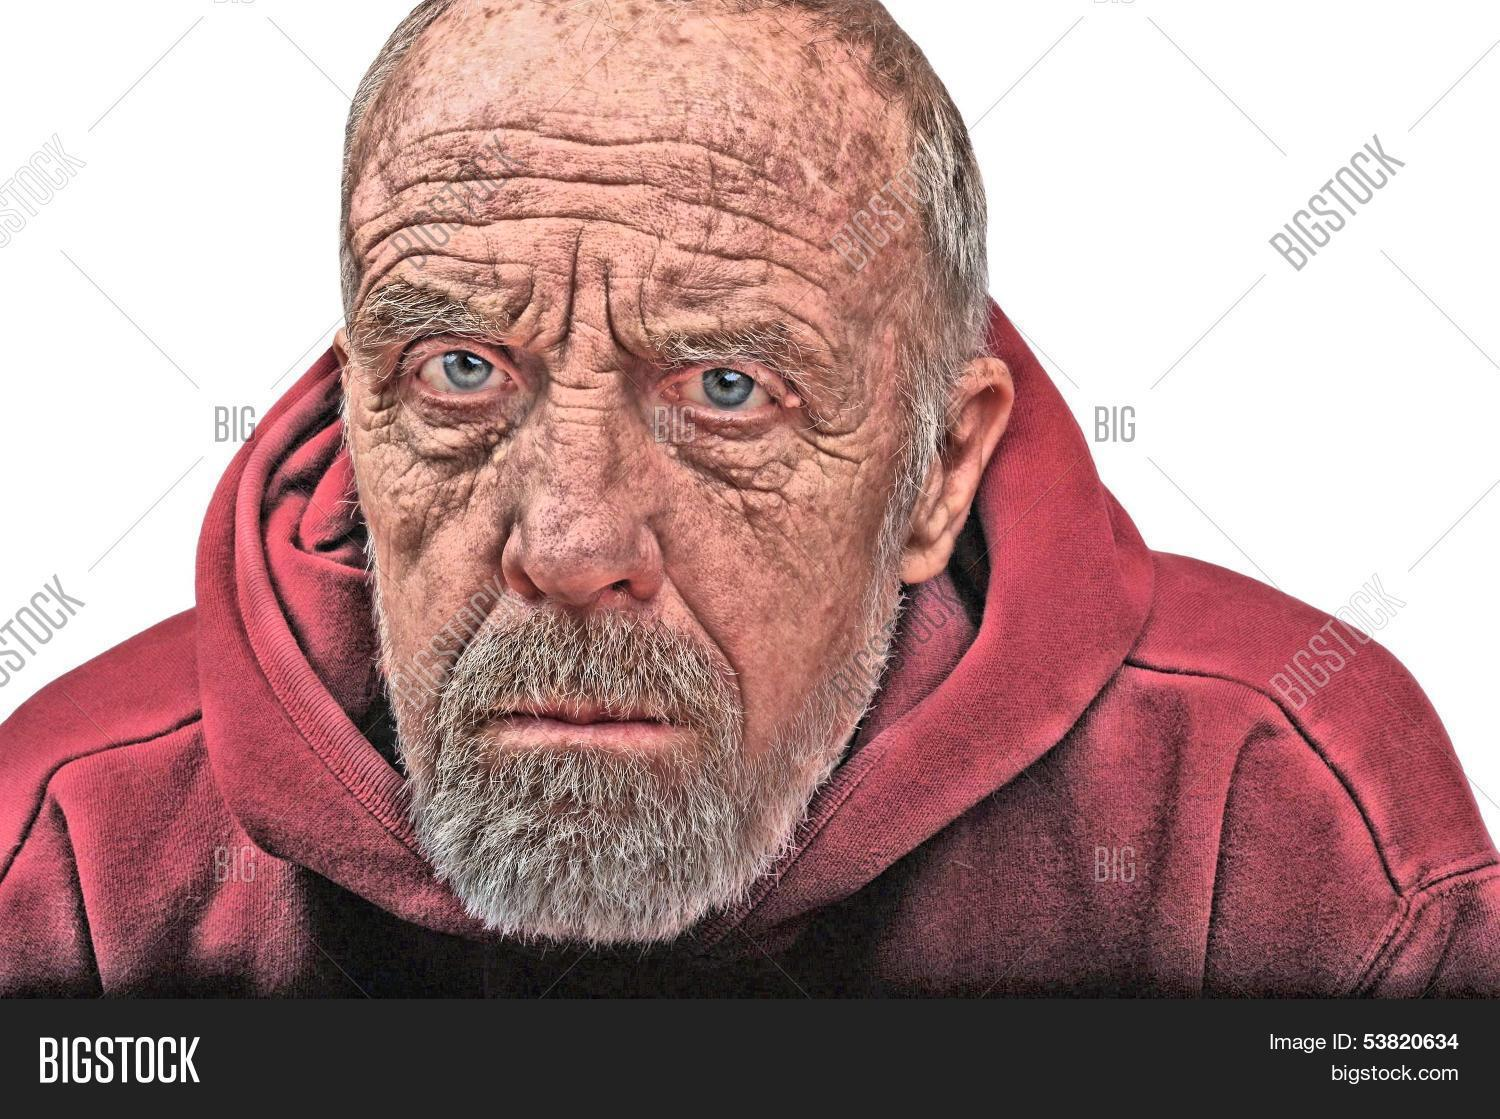 Angry Old Man Image Photo Free Trial Bigstock